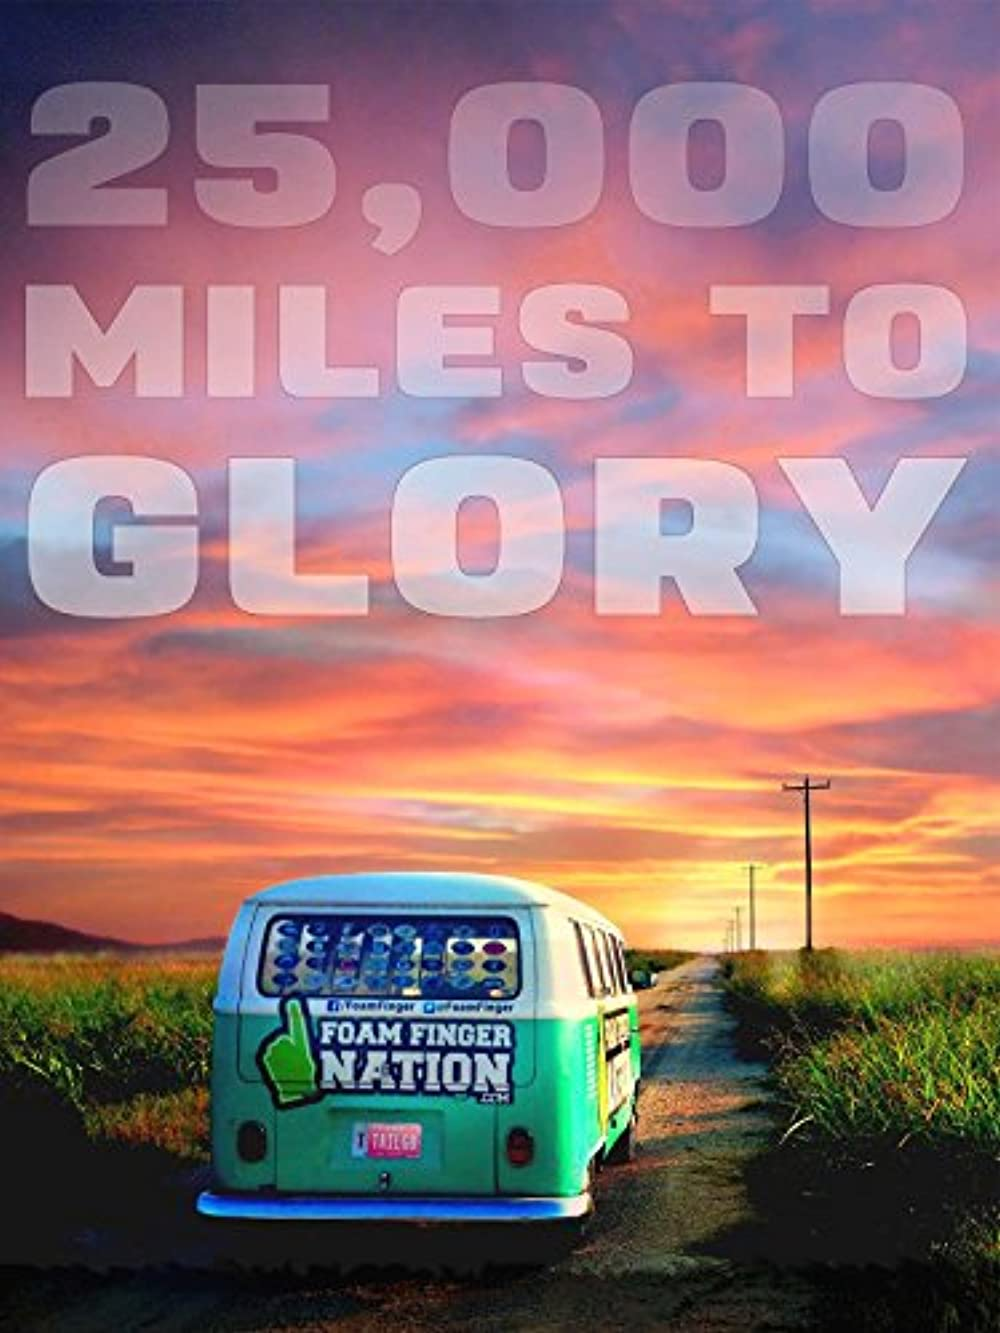 Watch 25,000 Miles to Glory Online